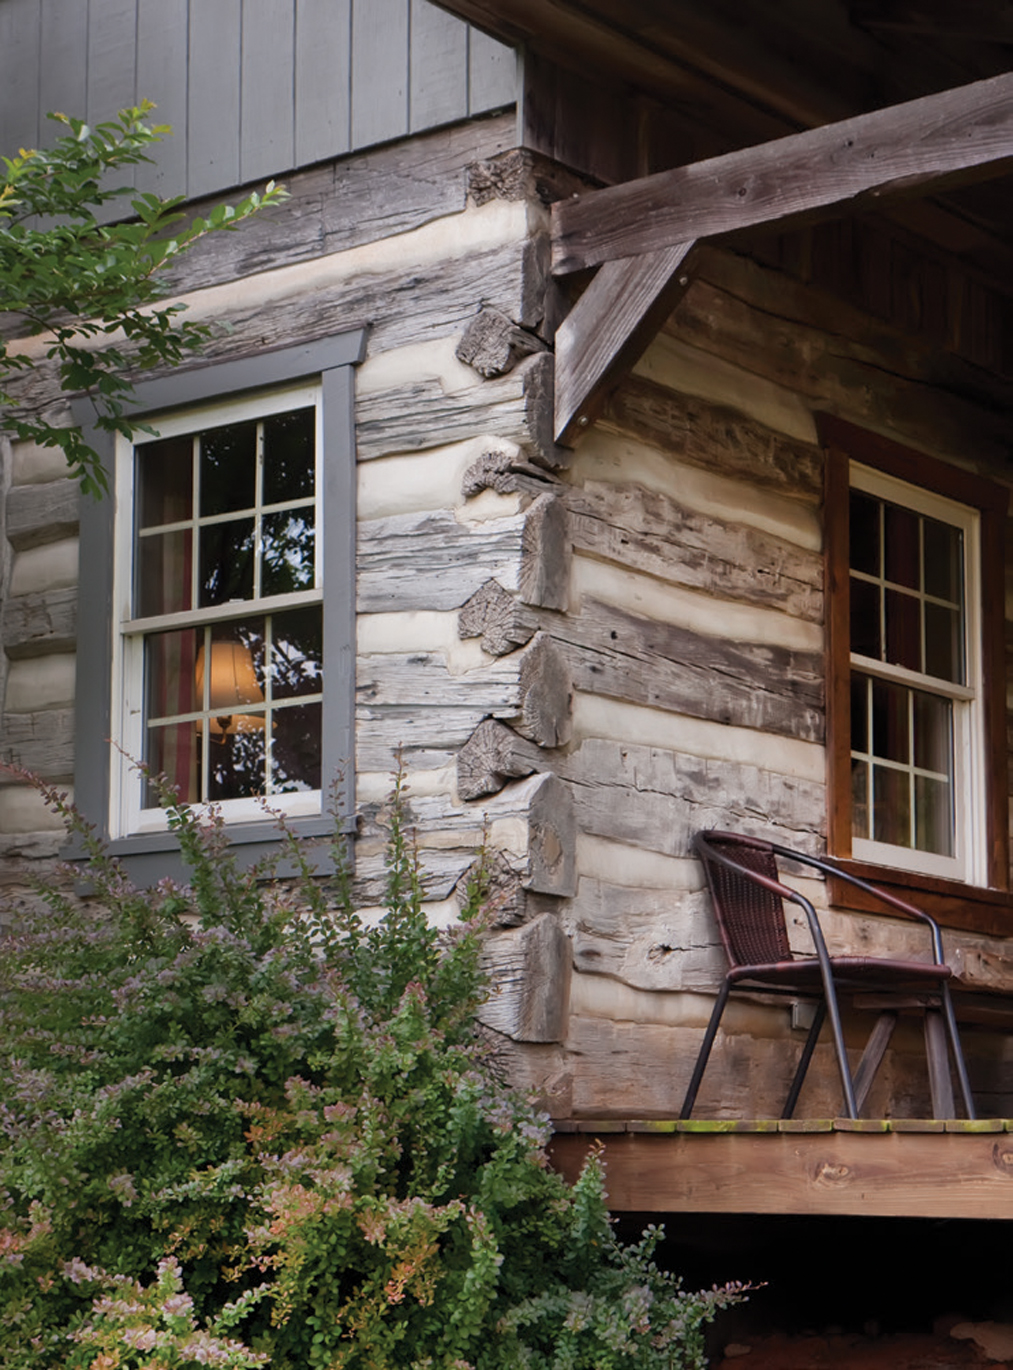 Home Magazine Masencup Log Cabin home 21 Jun 2016